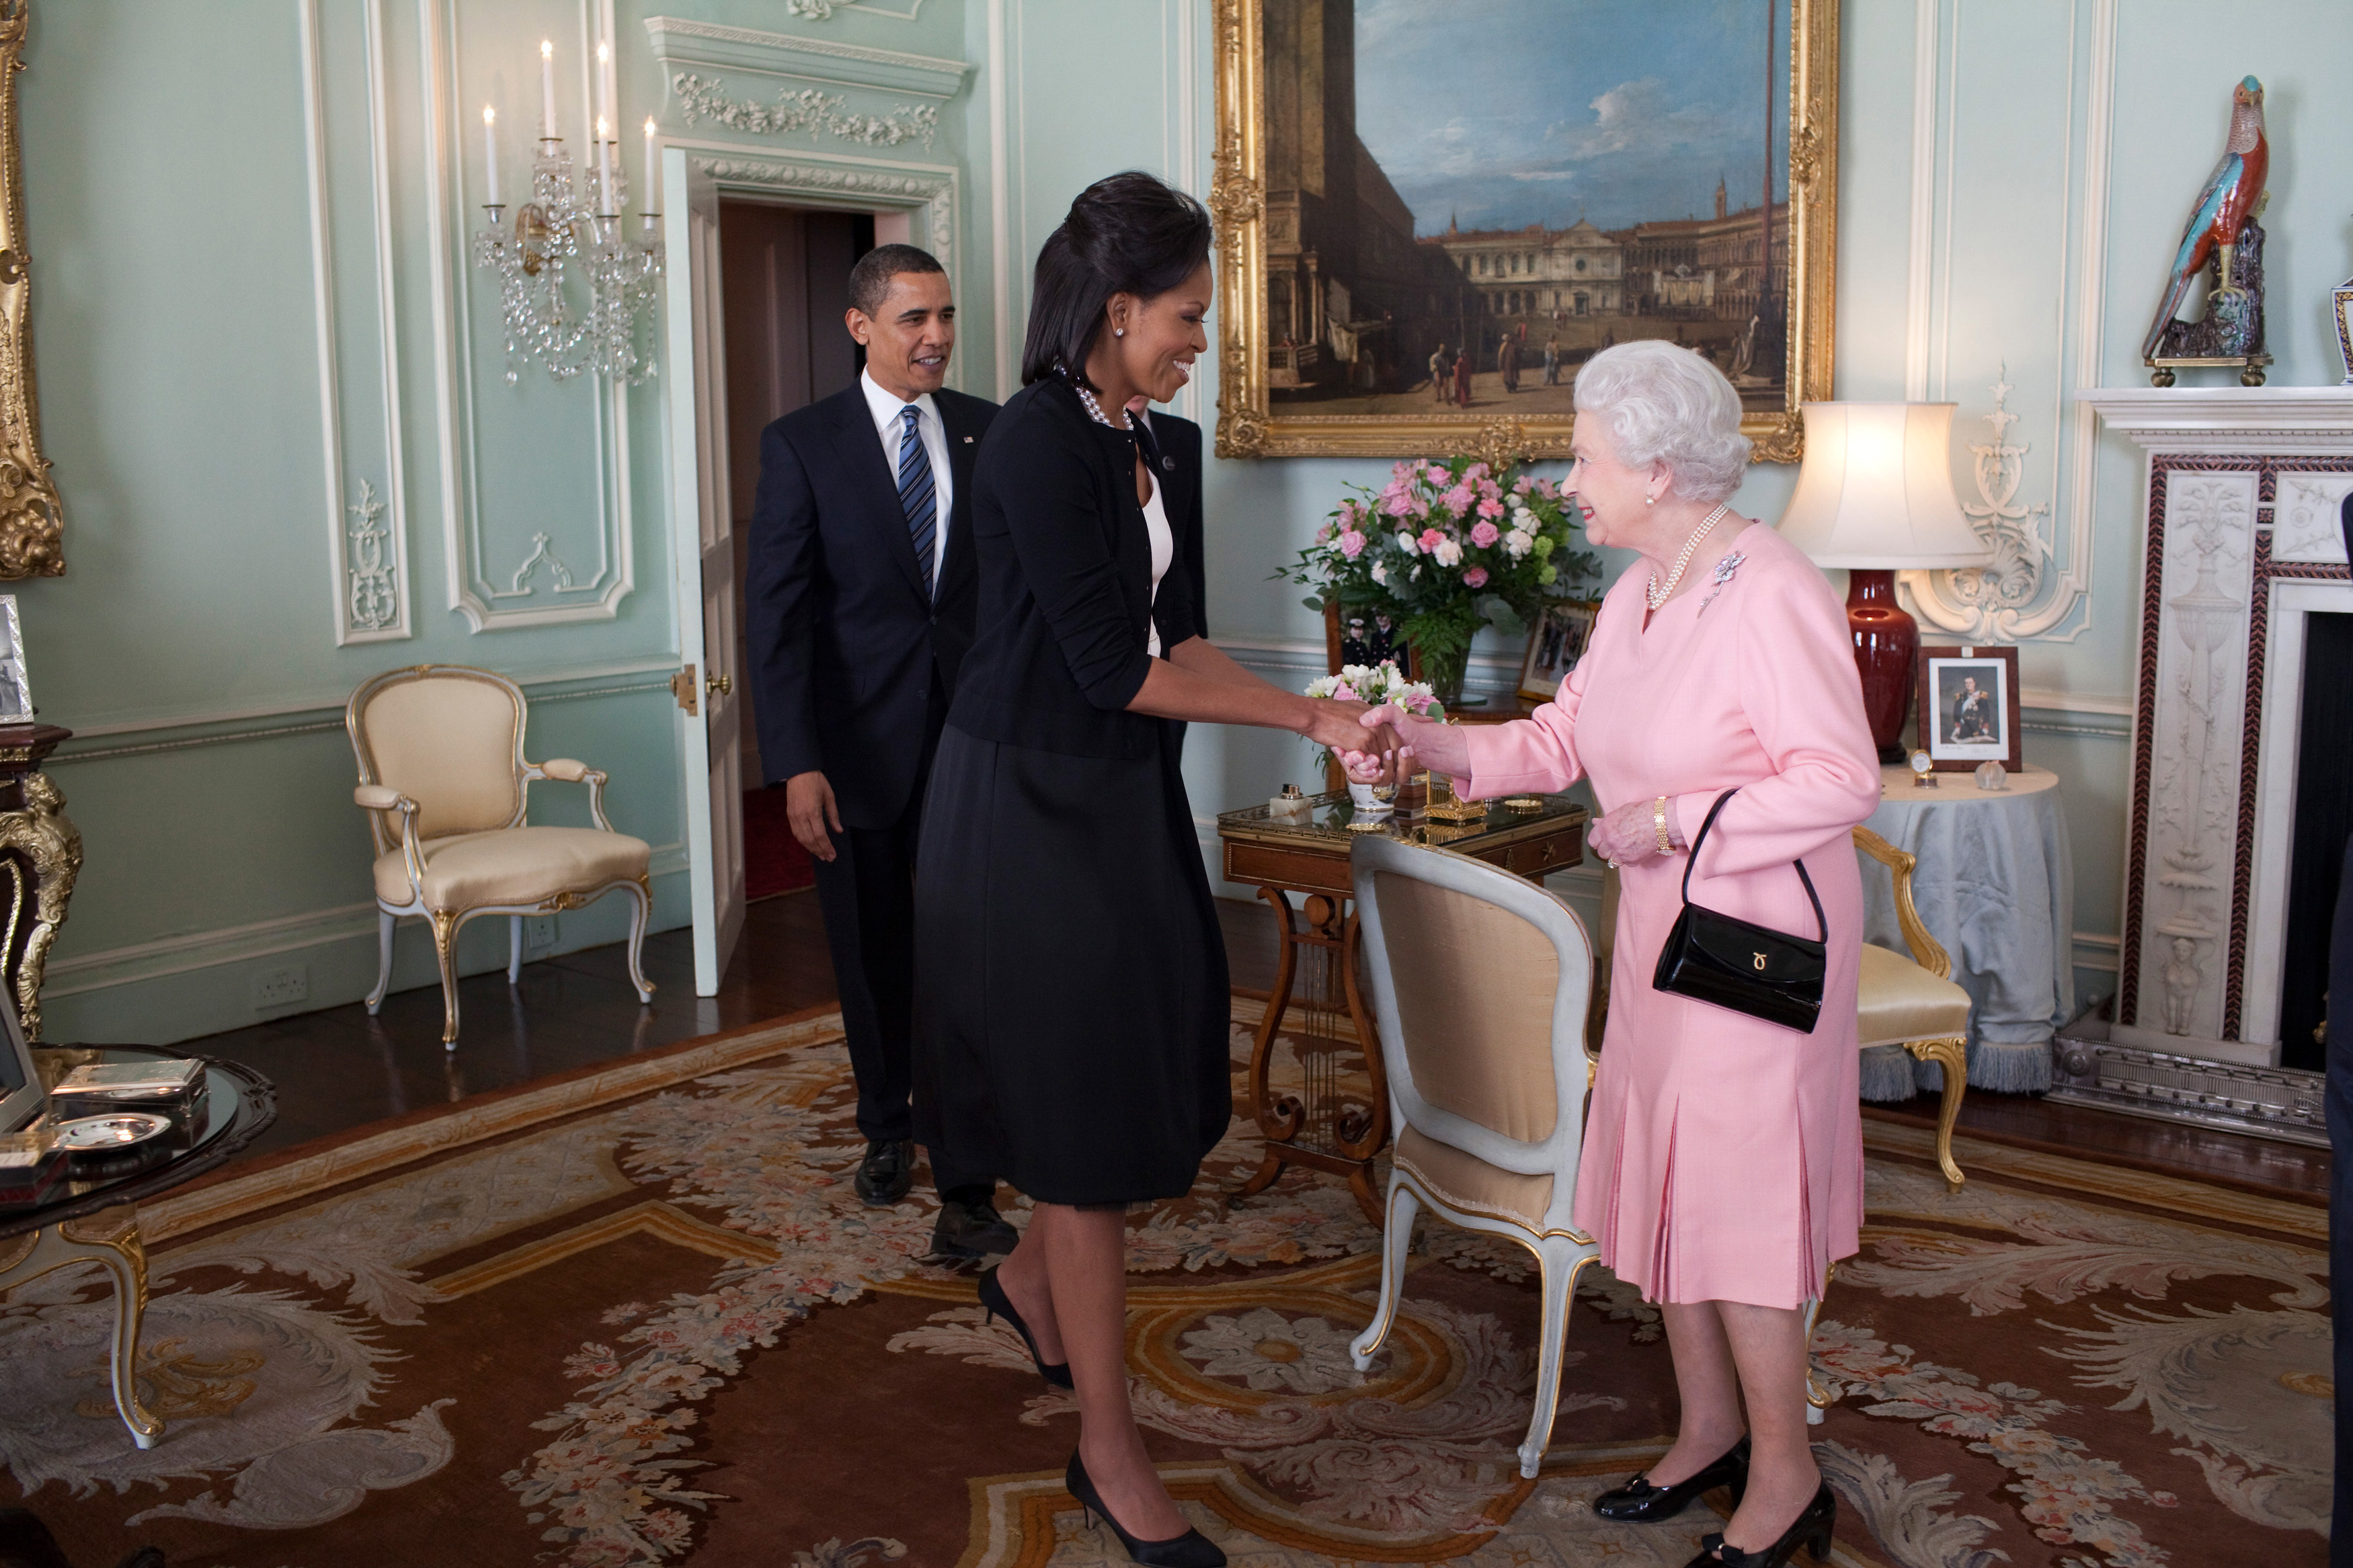 U.S. President Barack Obama and First Lady Michelle Obama are welcomed by Her Majesty Queen Elizabeth II to Buckingham Palace on April 1, 2009 in London, England. Obama is serving as the 44th President of the U.S. and the first African-American to be elected to the office of President in the history of the United States.